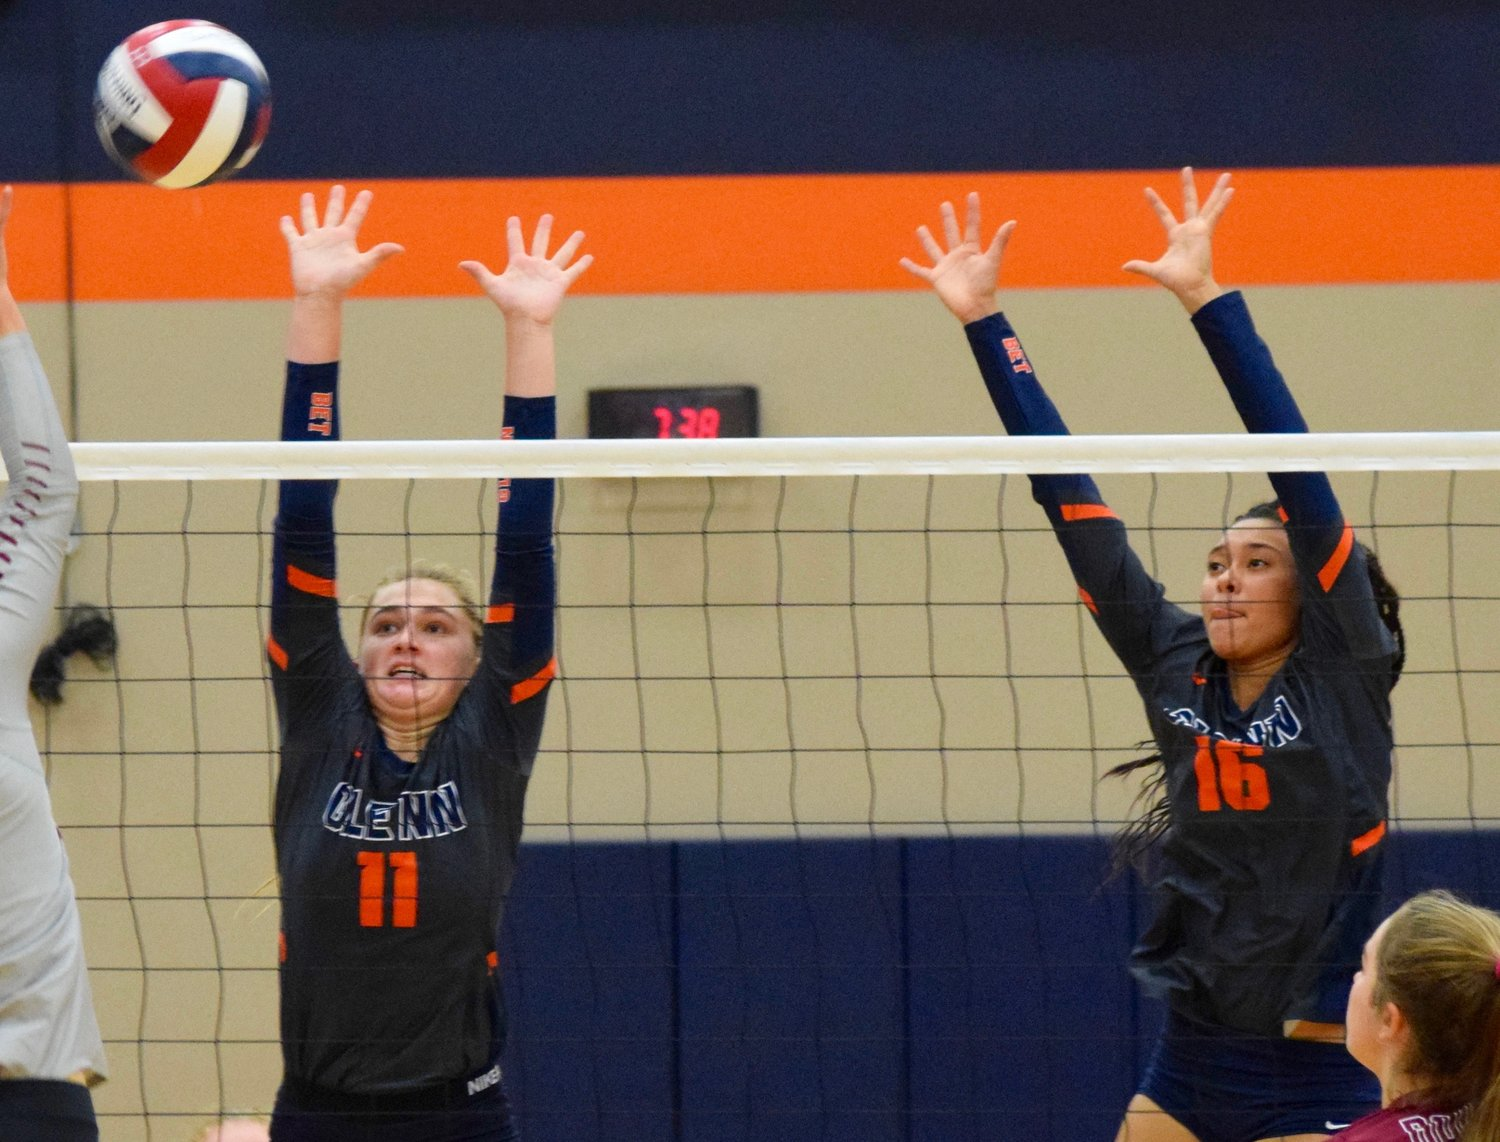 Emily Marchell, left, Chloe Coffee and Glenn were swept by Rouse 3-0 (25-11, 25-10, 25-19) Tuesday night at home.